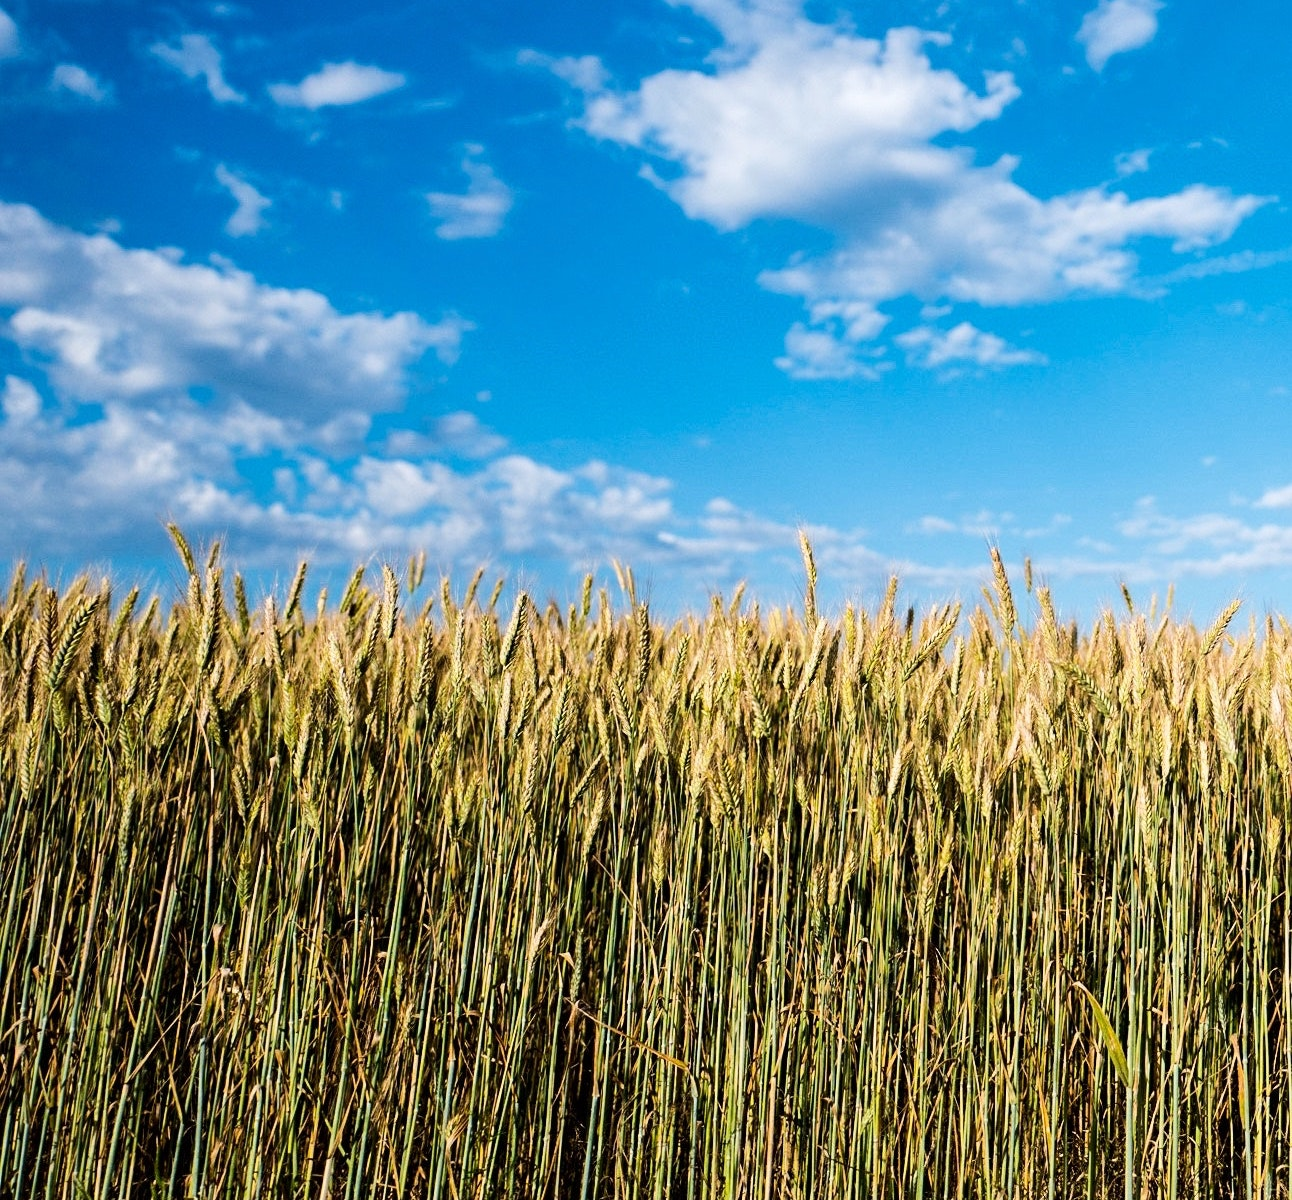 wide shot of prairies crops with a bright blue sky